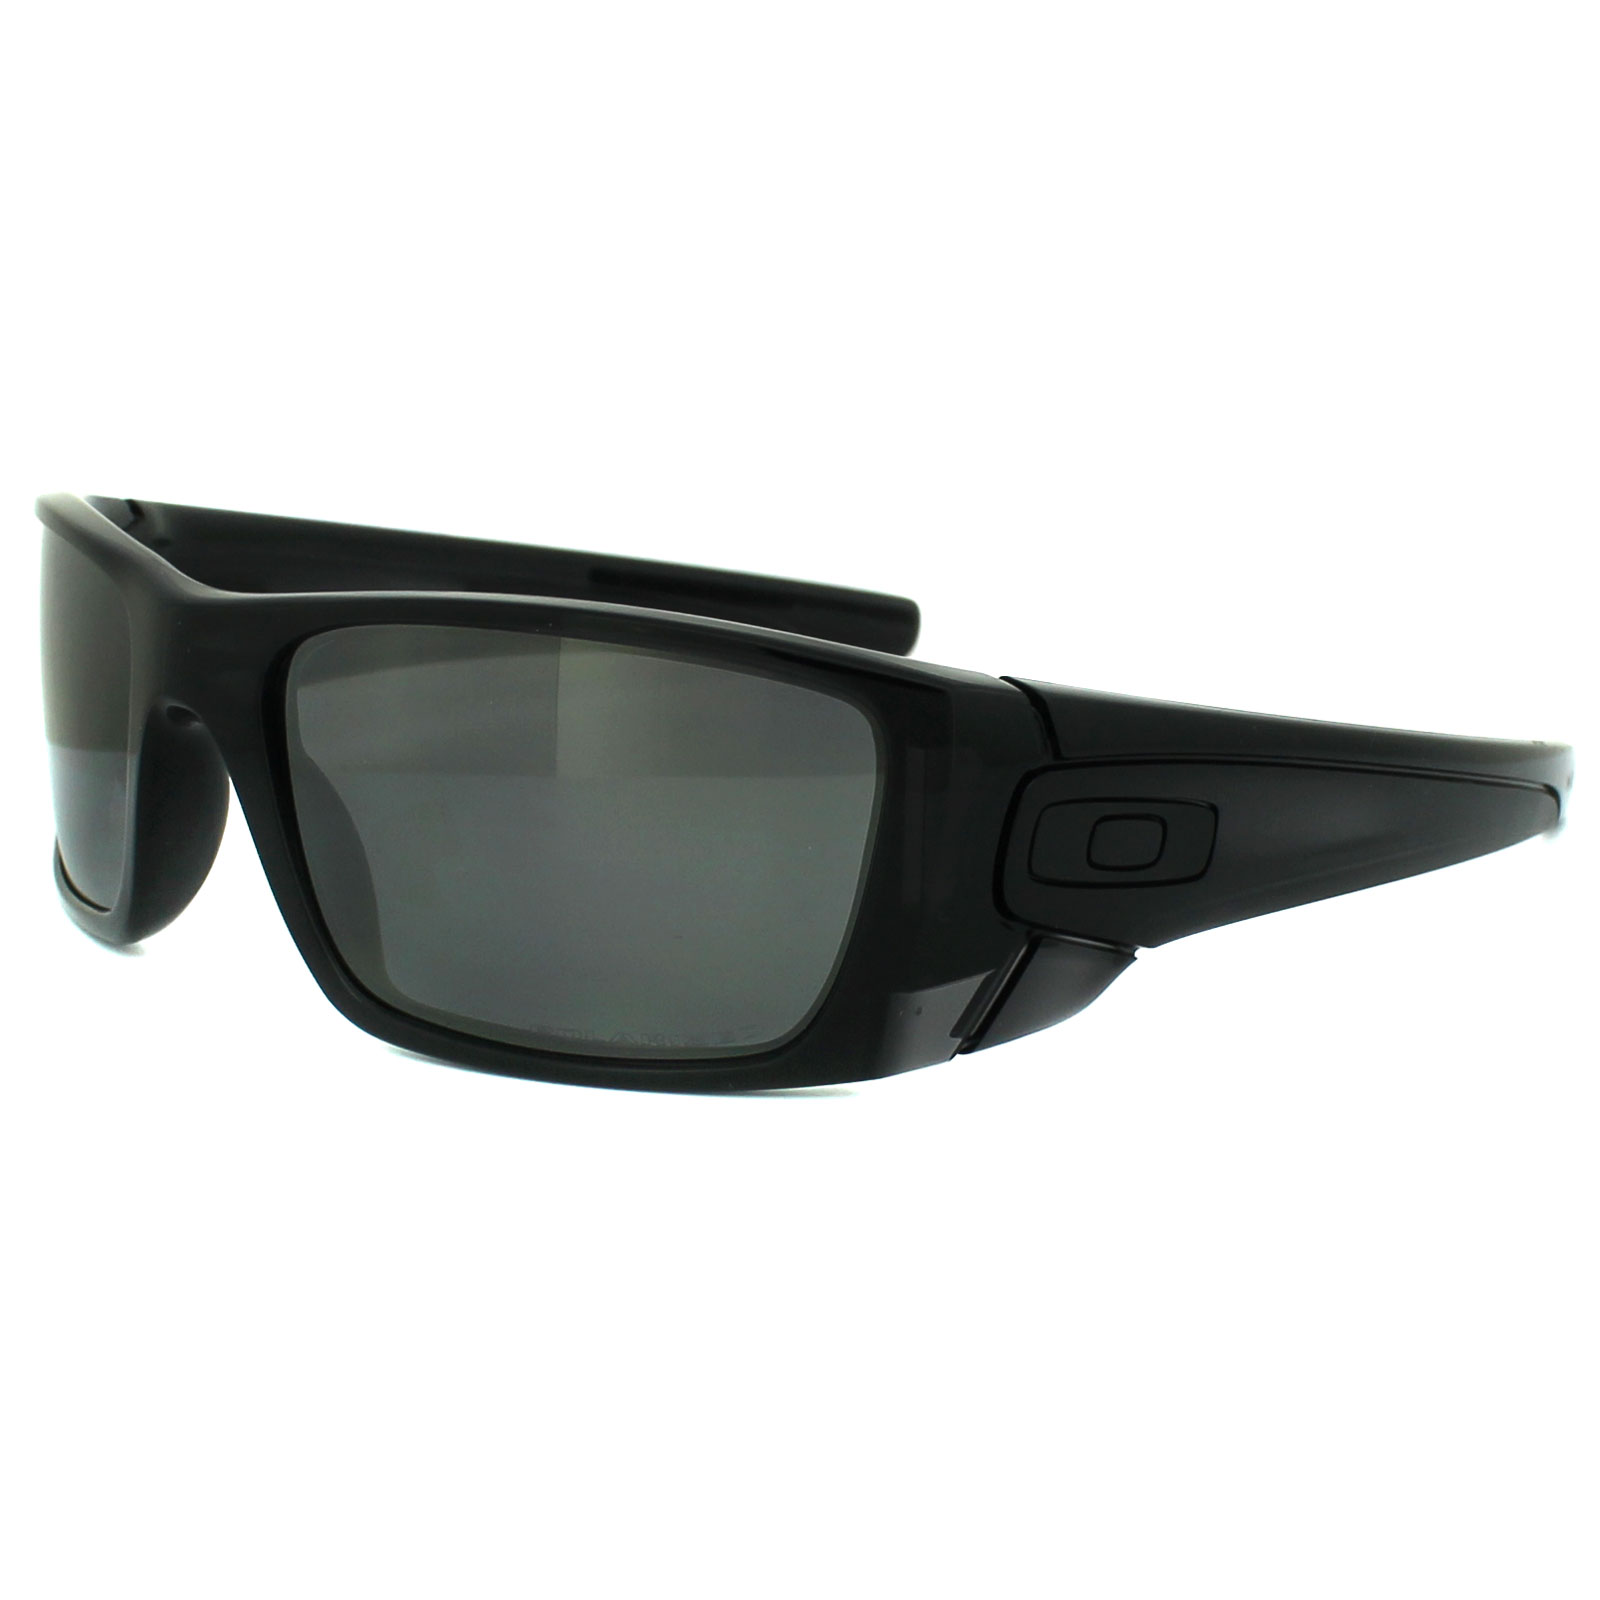 best place to buy oakley sunglasses  Cheap Oakley Sunglasses - Discounted Sunglasses